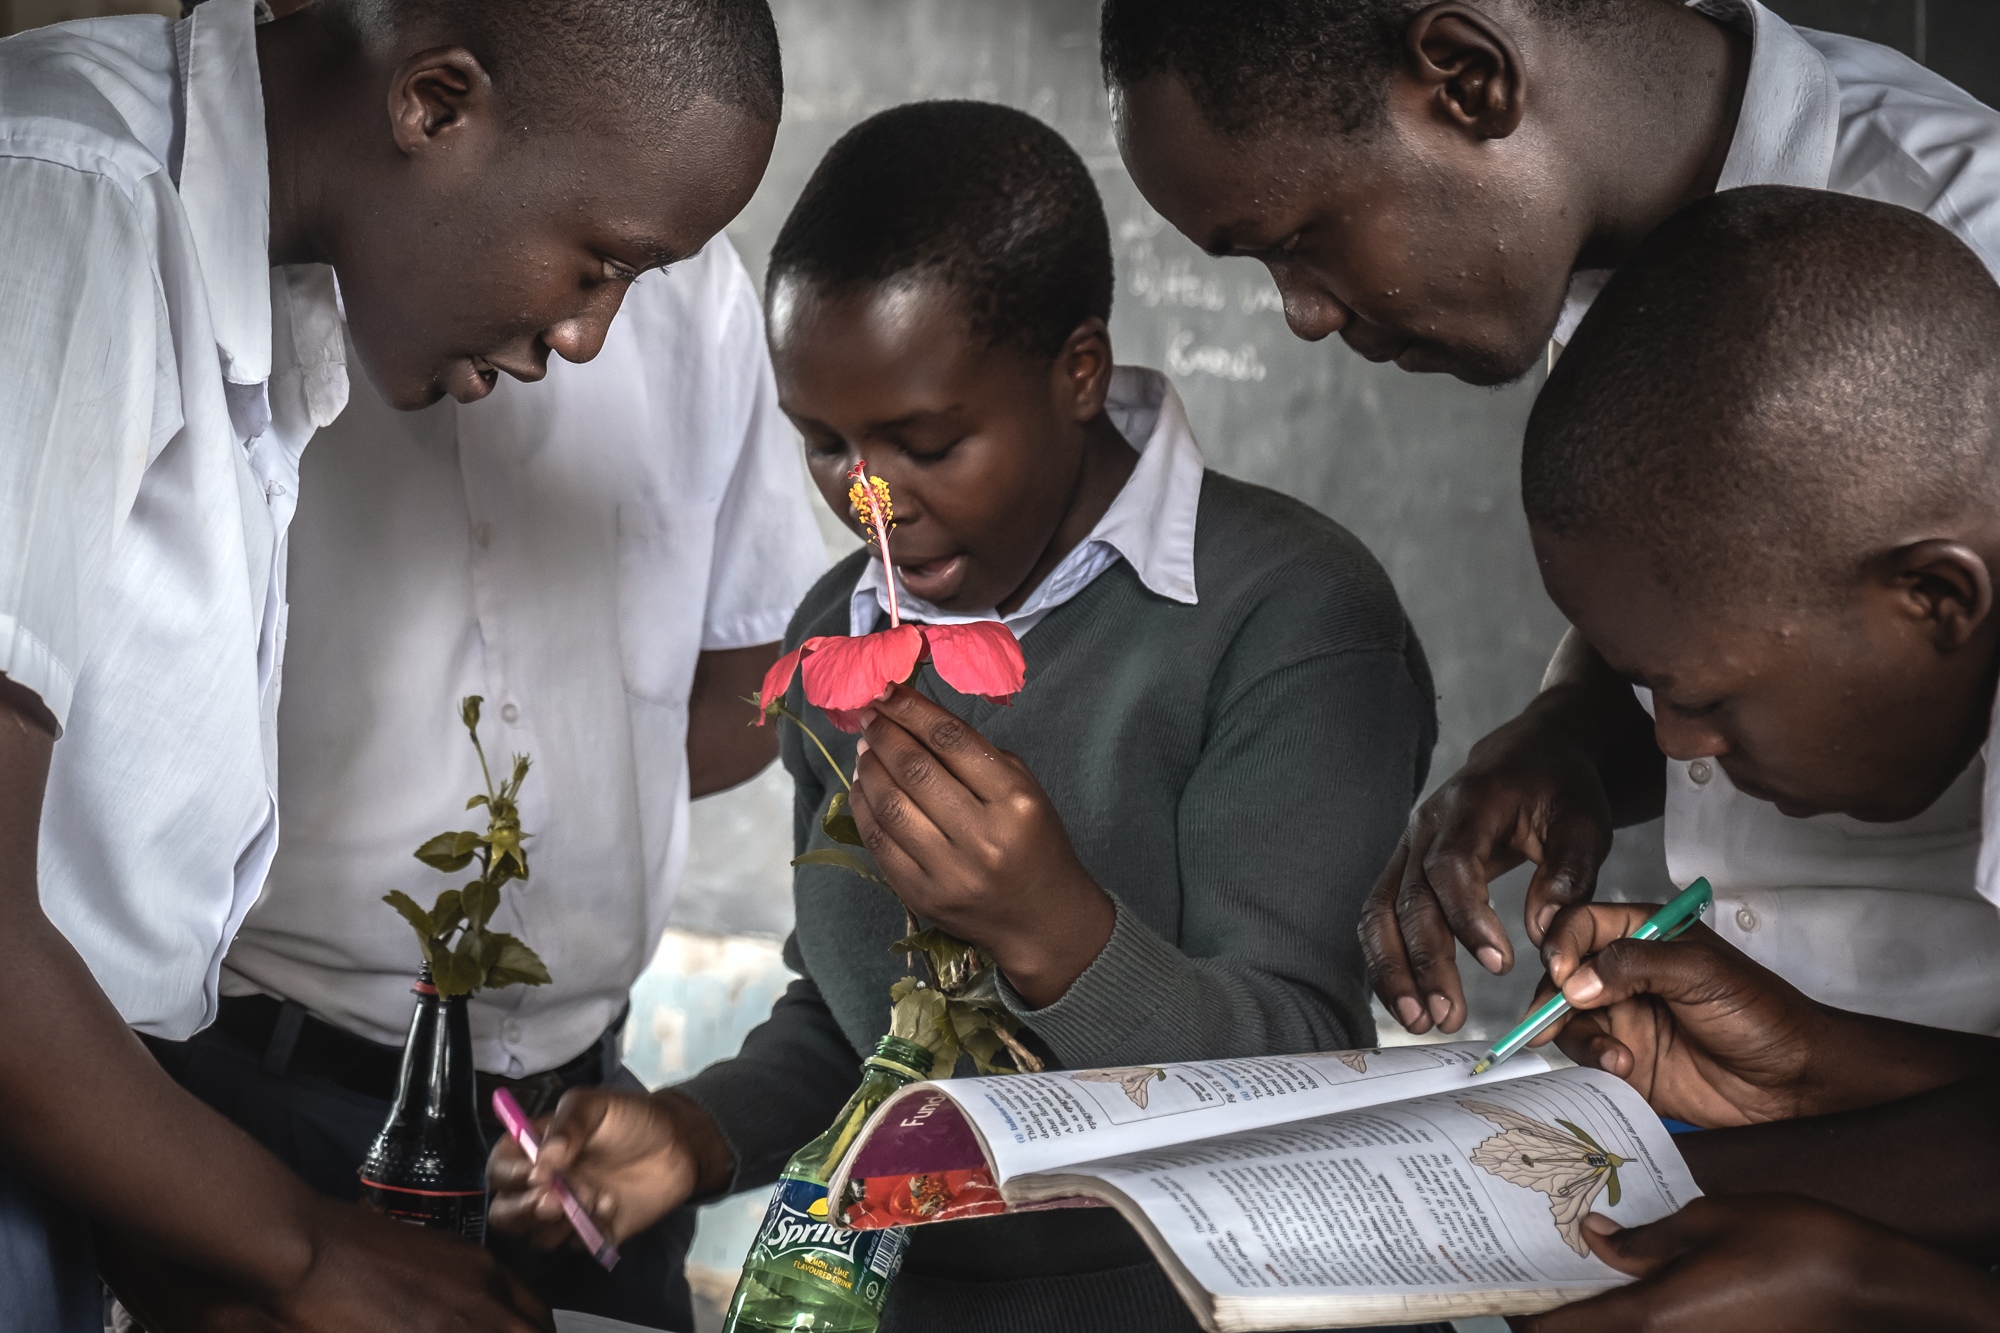 SeedScience is among the winners of the 2021 Youth Exchange Grant